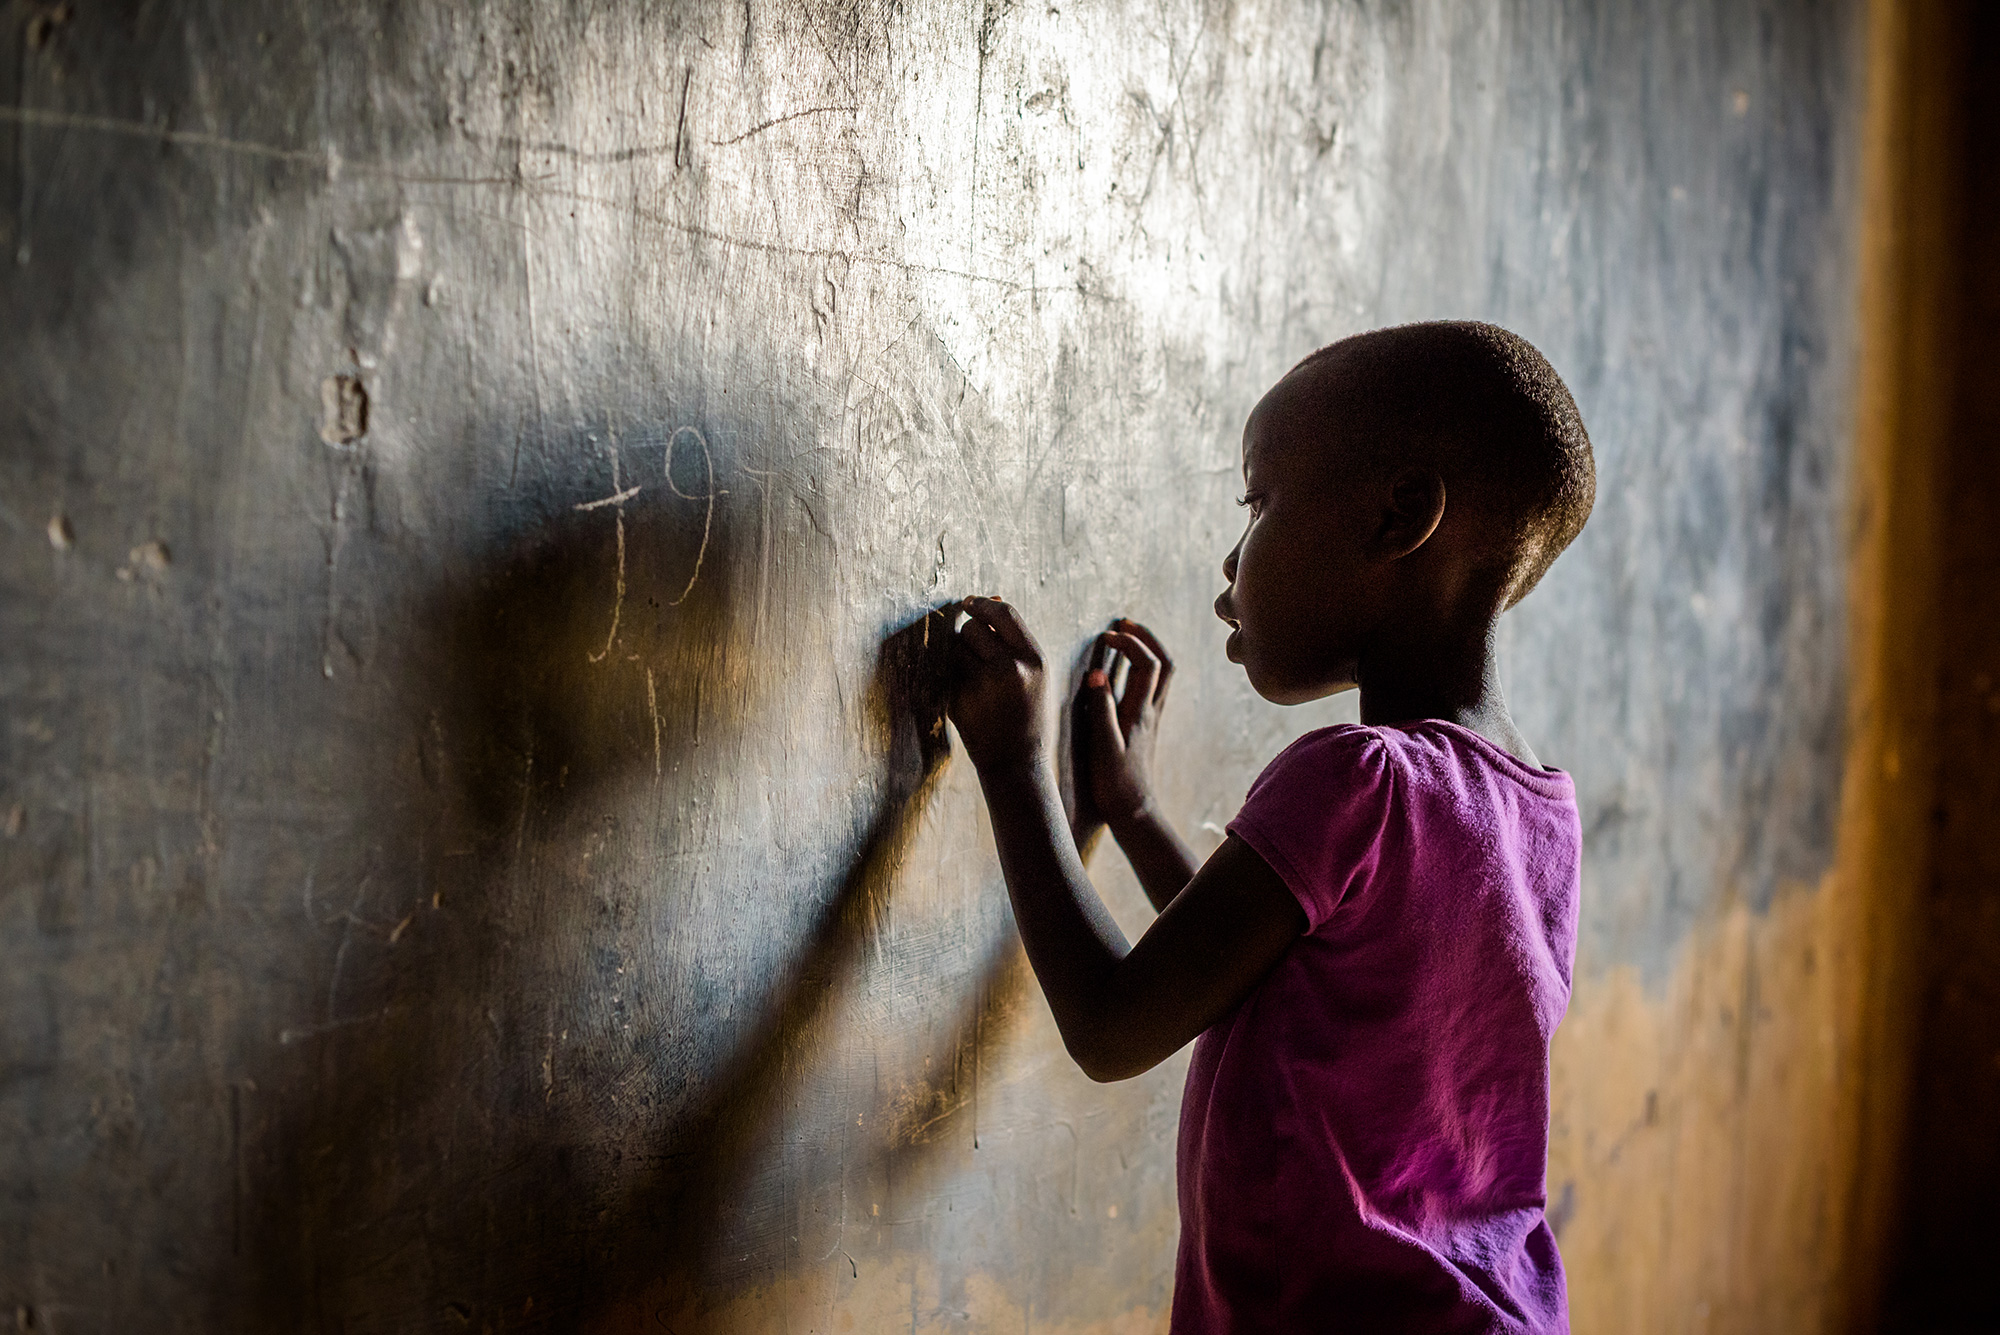 An African girl writes on a Chalkboard